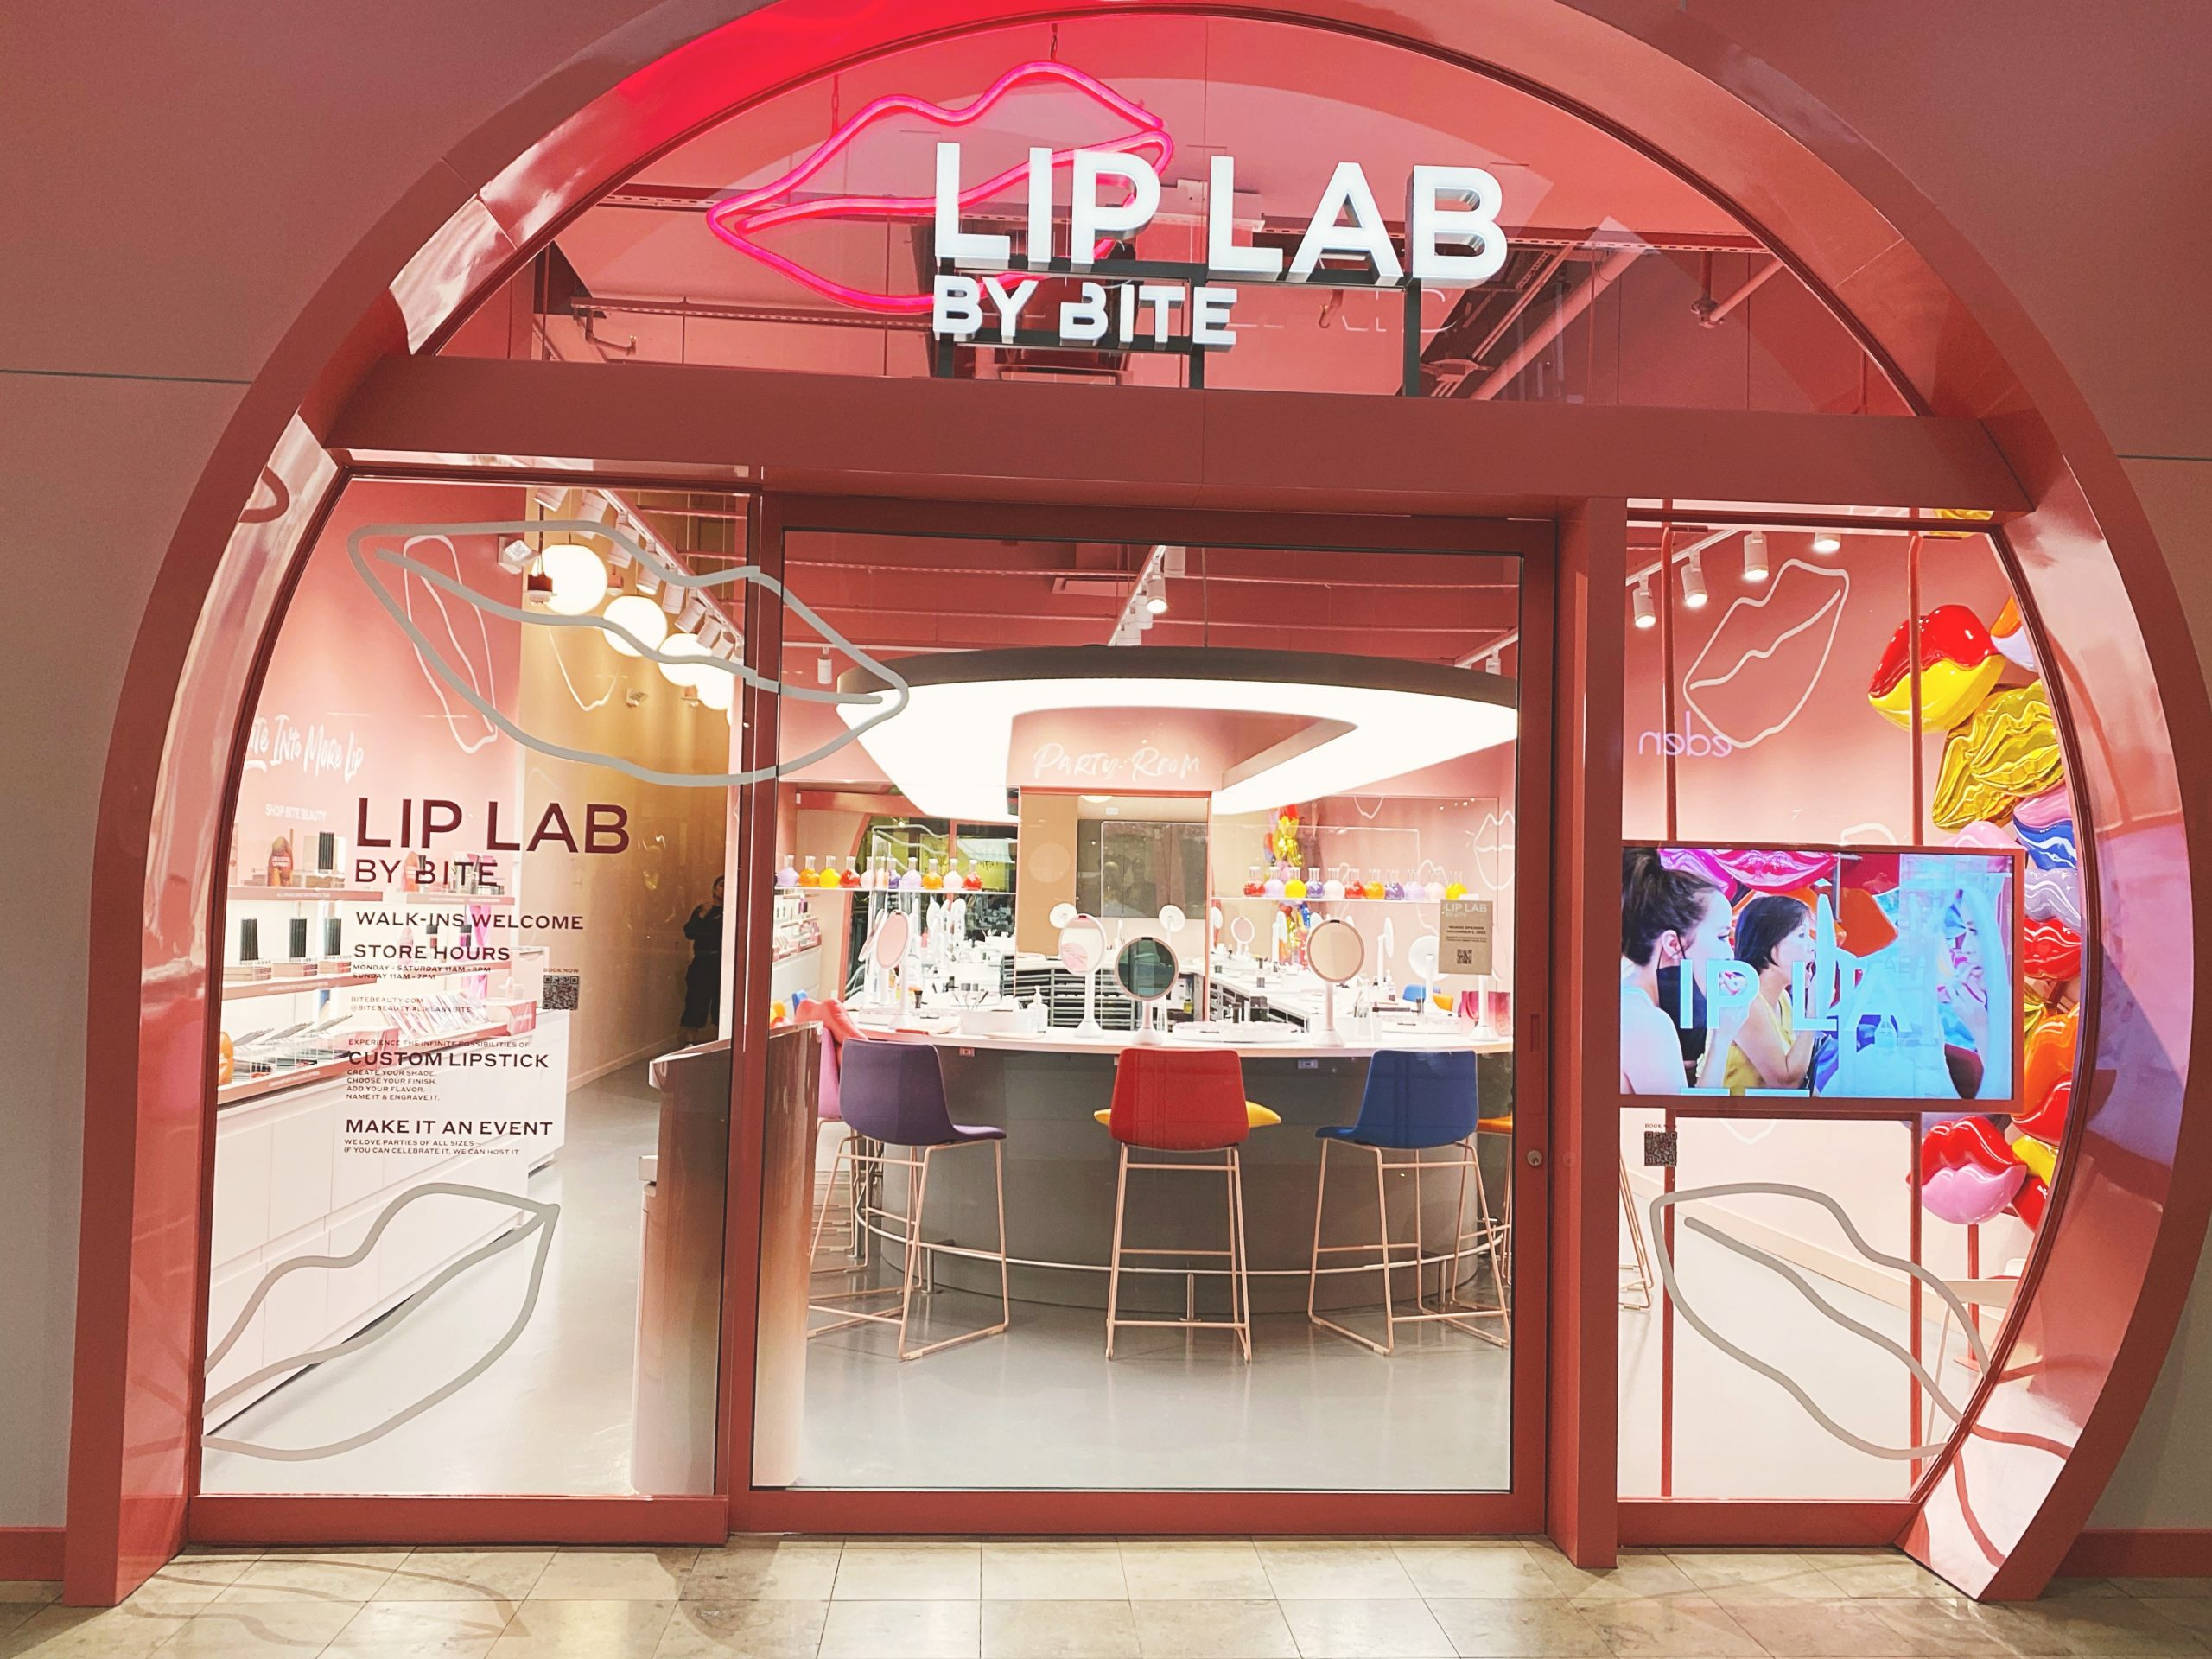 The Lip Lab by BITE